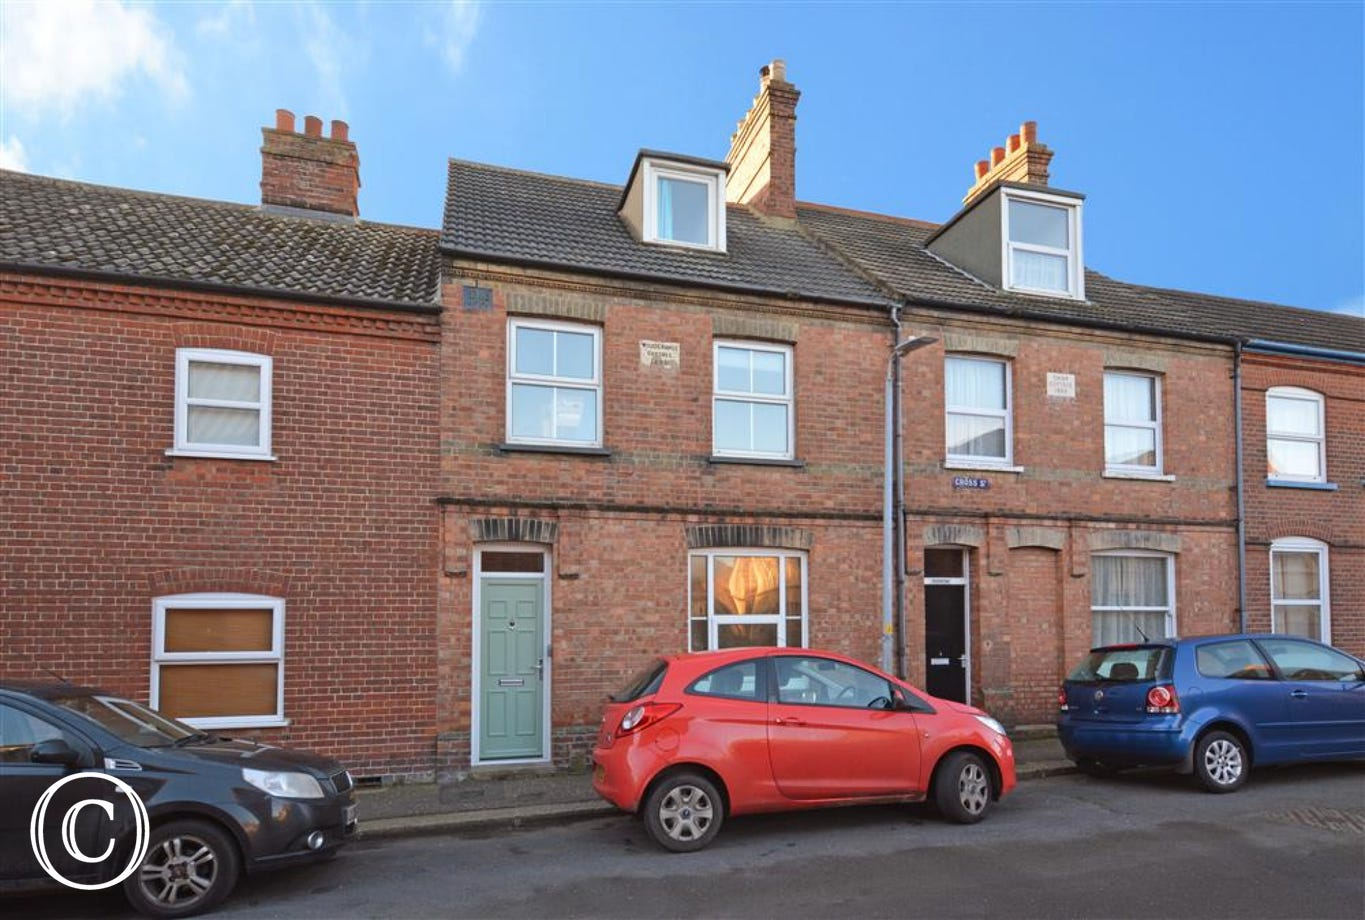 Exterior image of this attractive terraced property